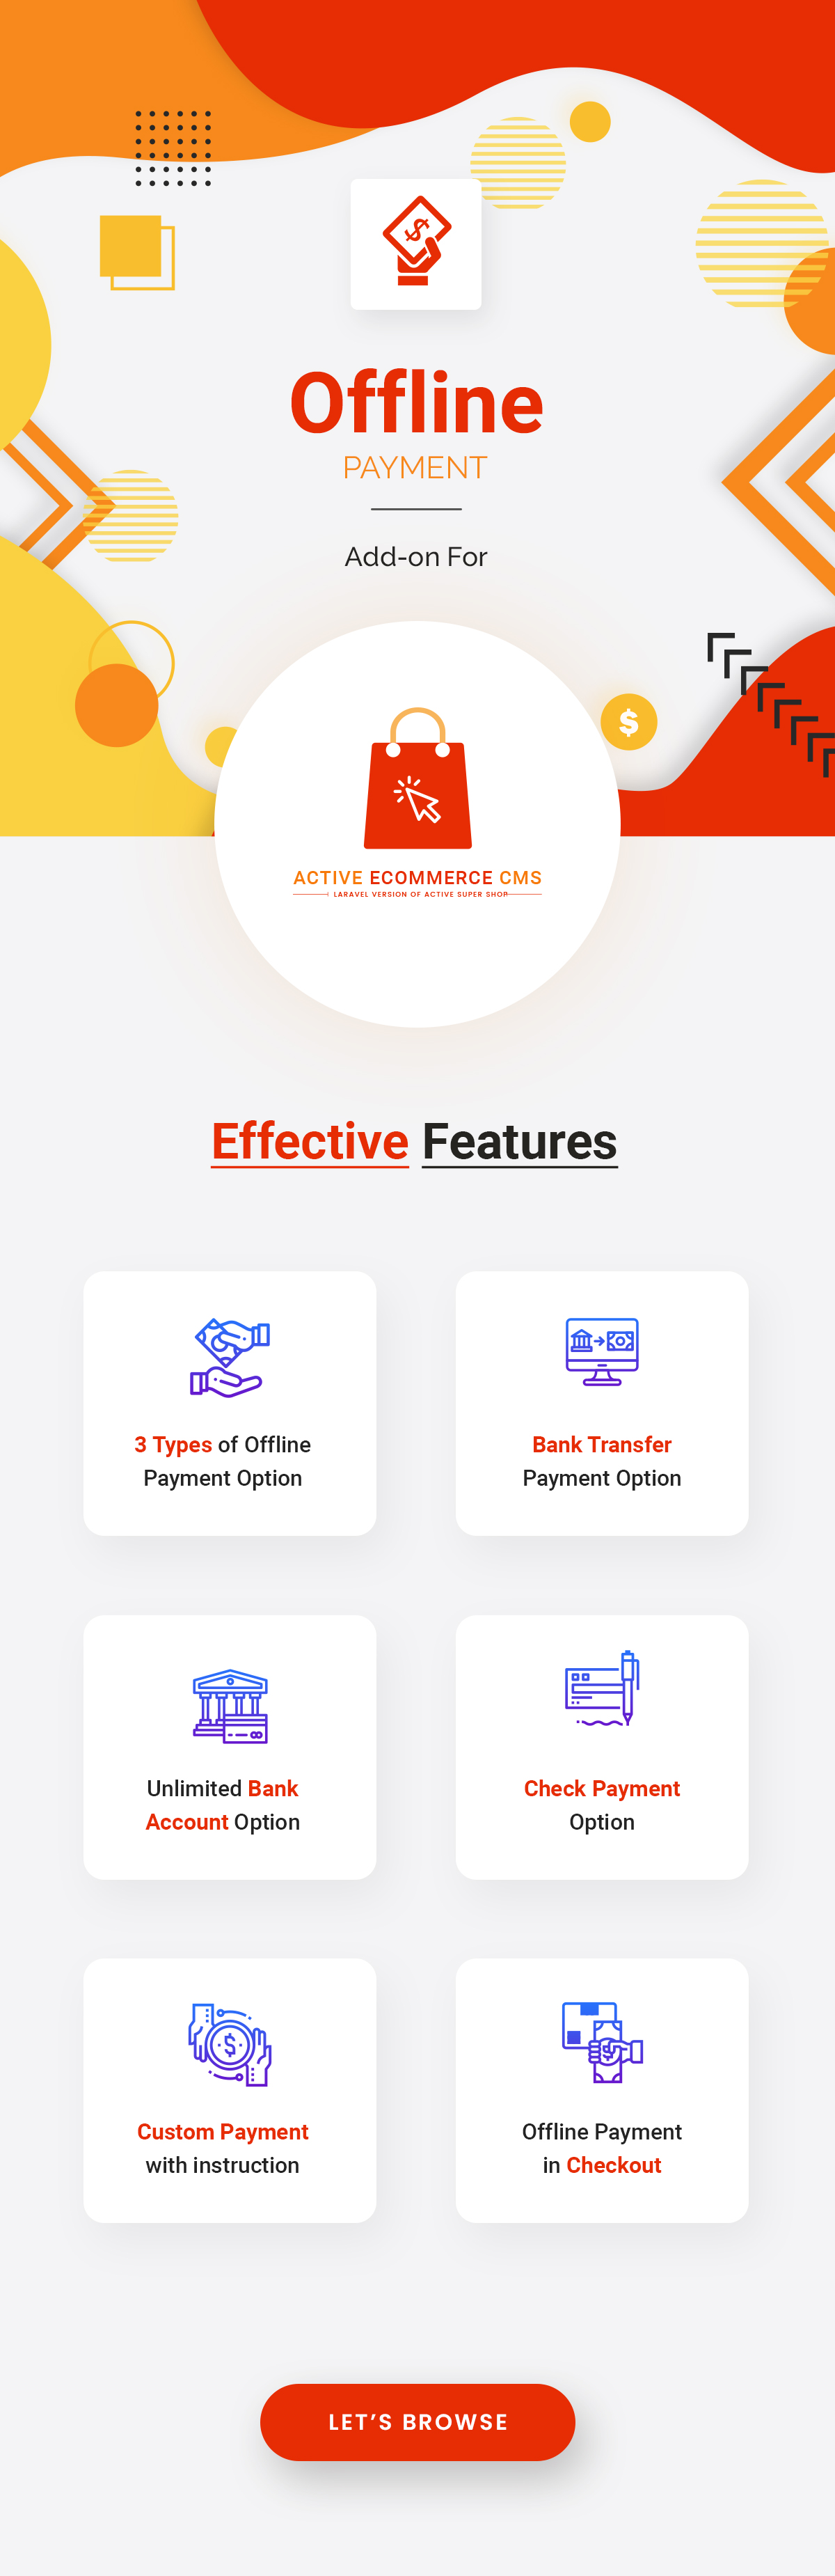 Active eCommerce Offline Payment Add-on - 1